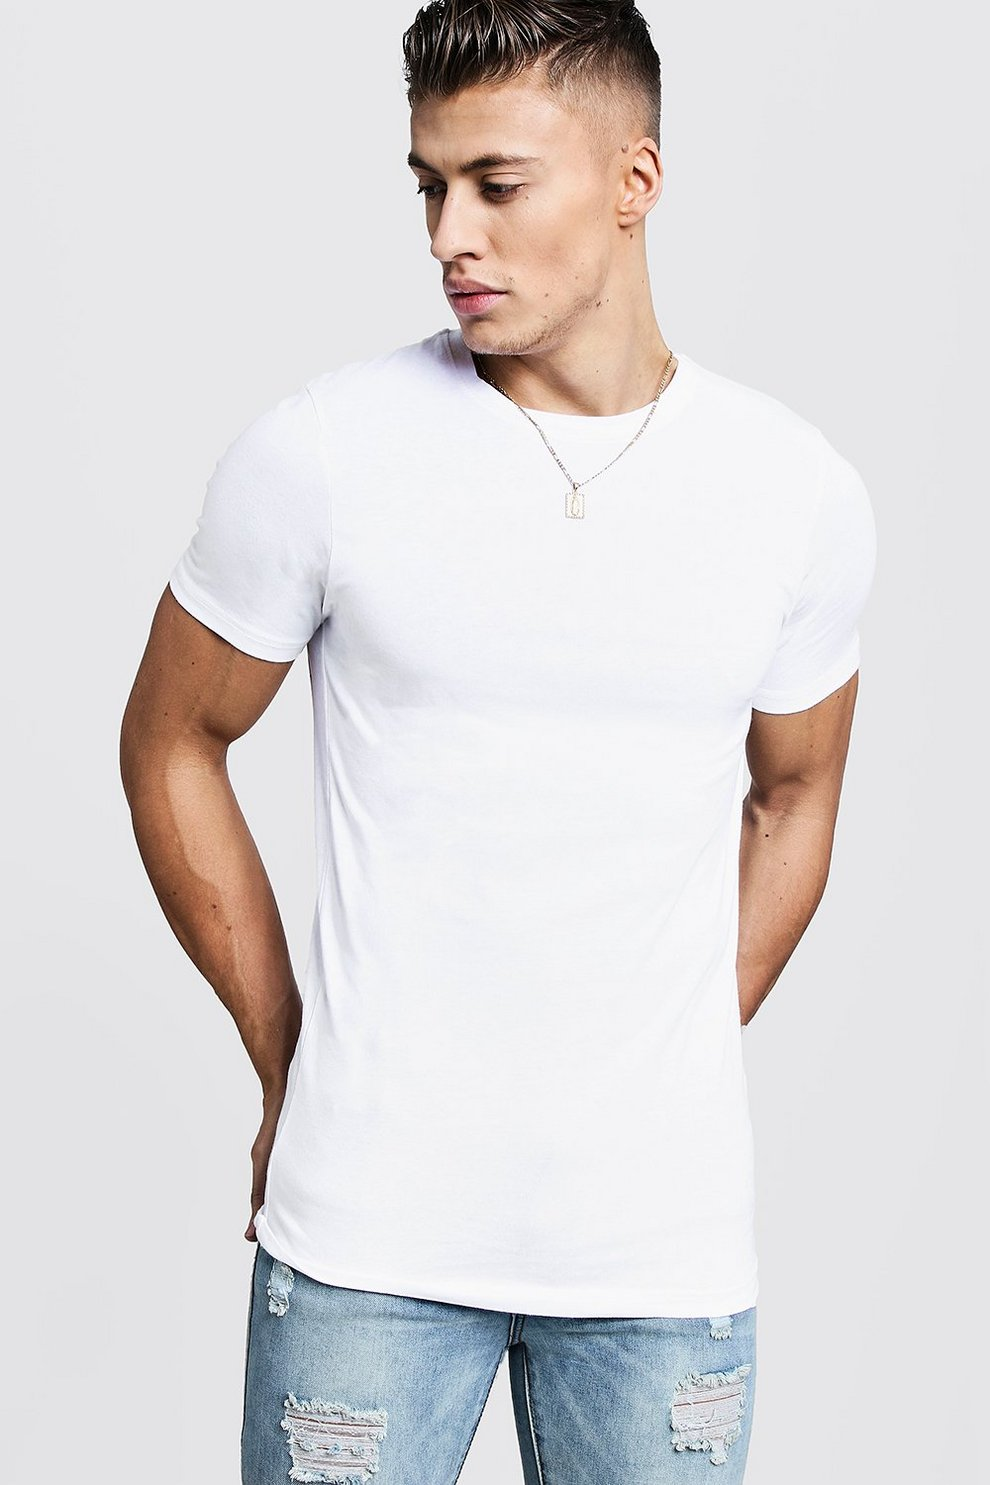 542a616c Mens White Muscle Fit Crew Neck T Shirt